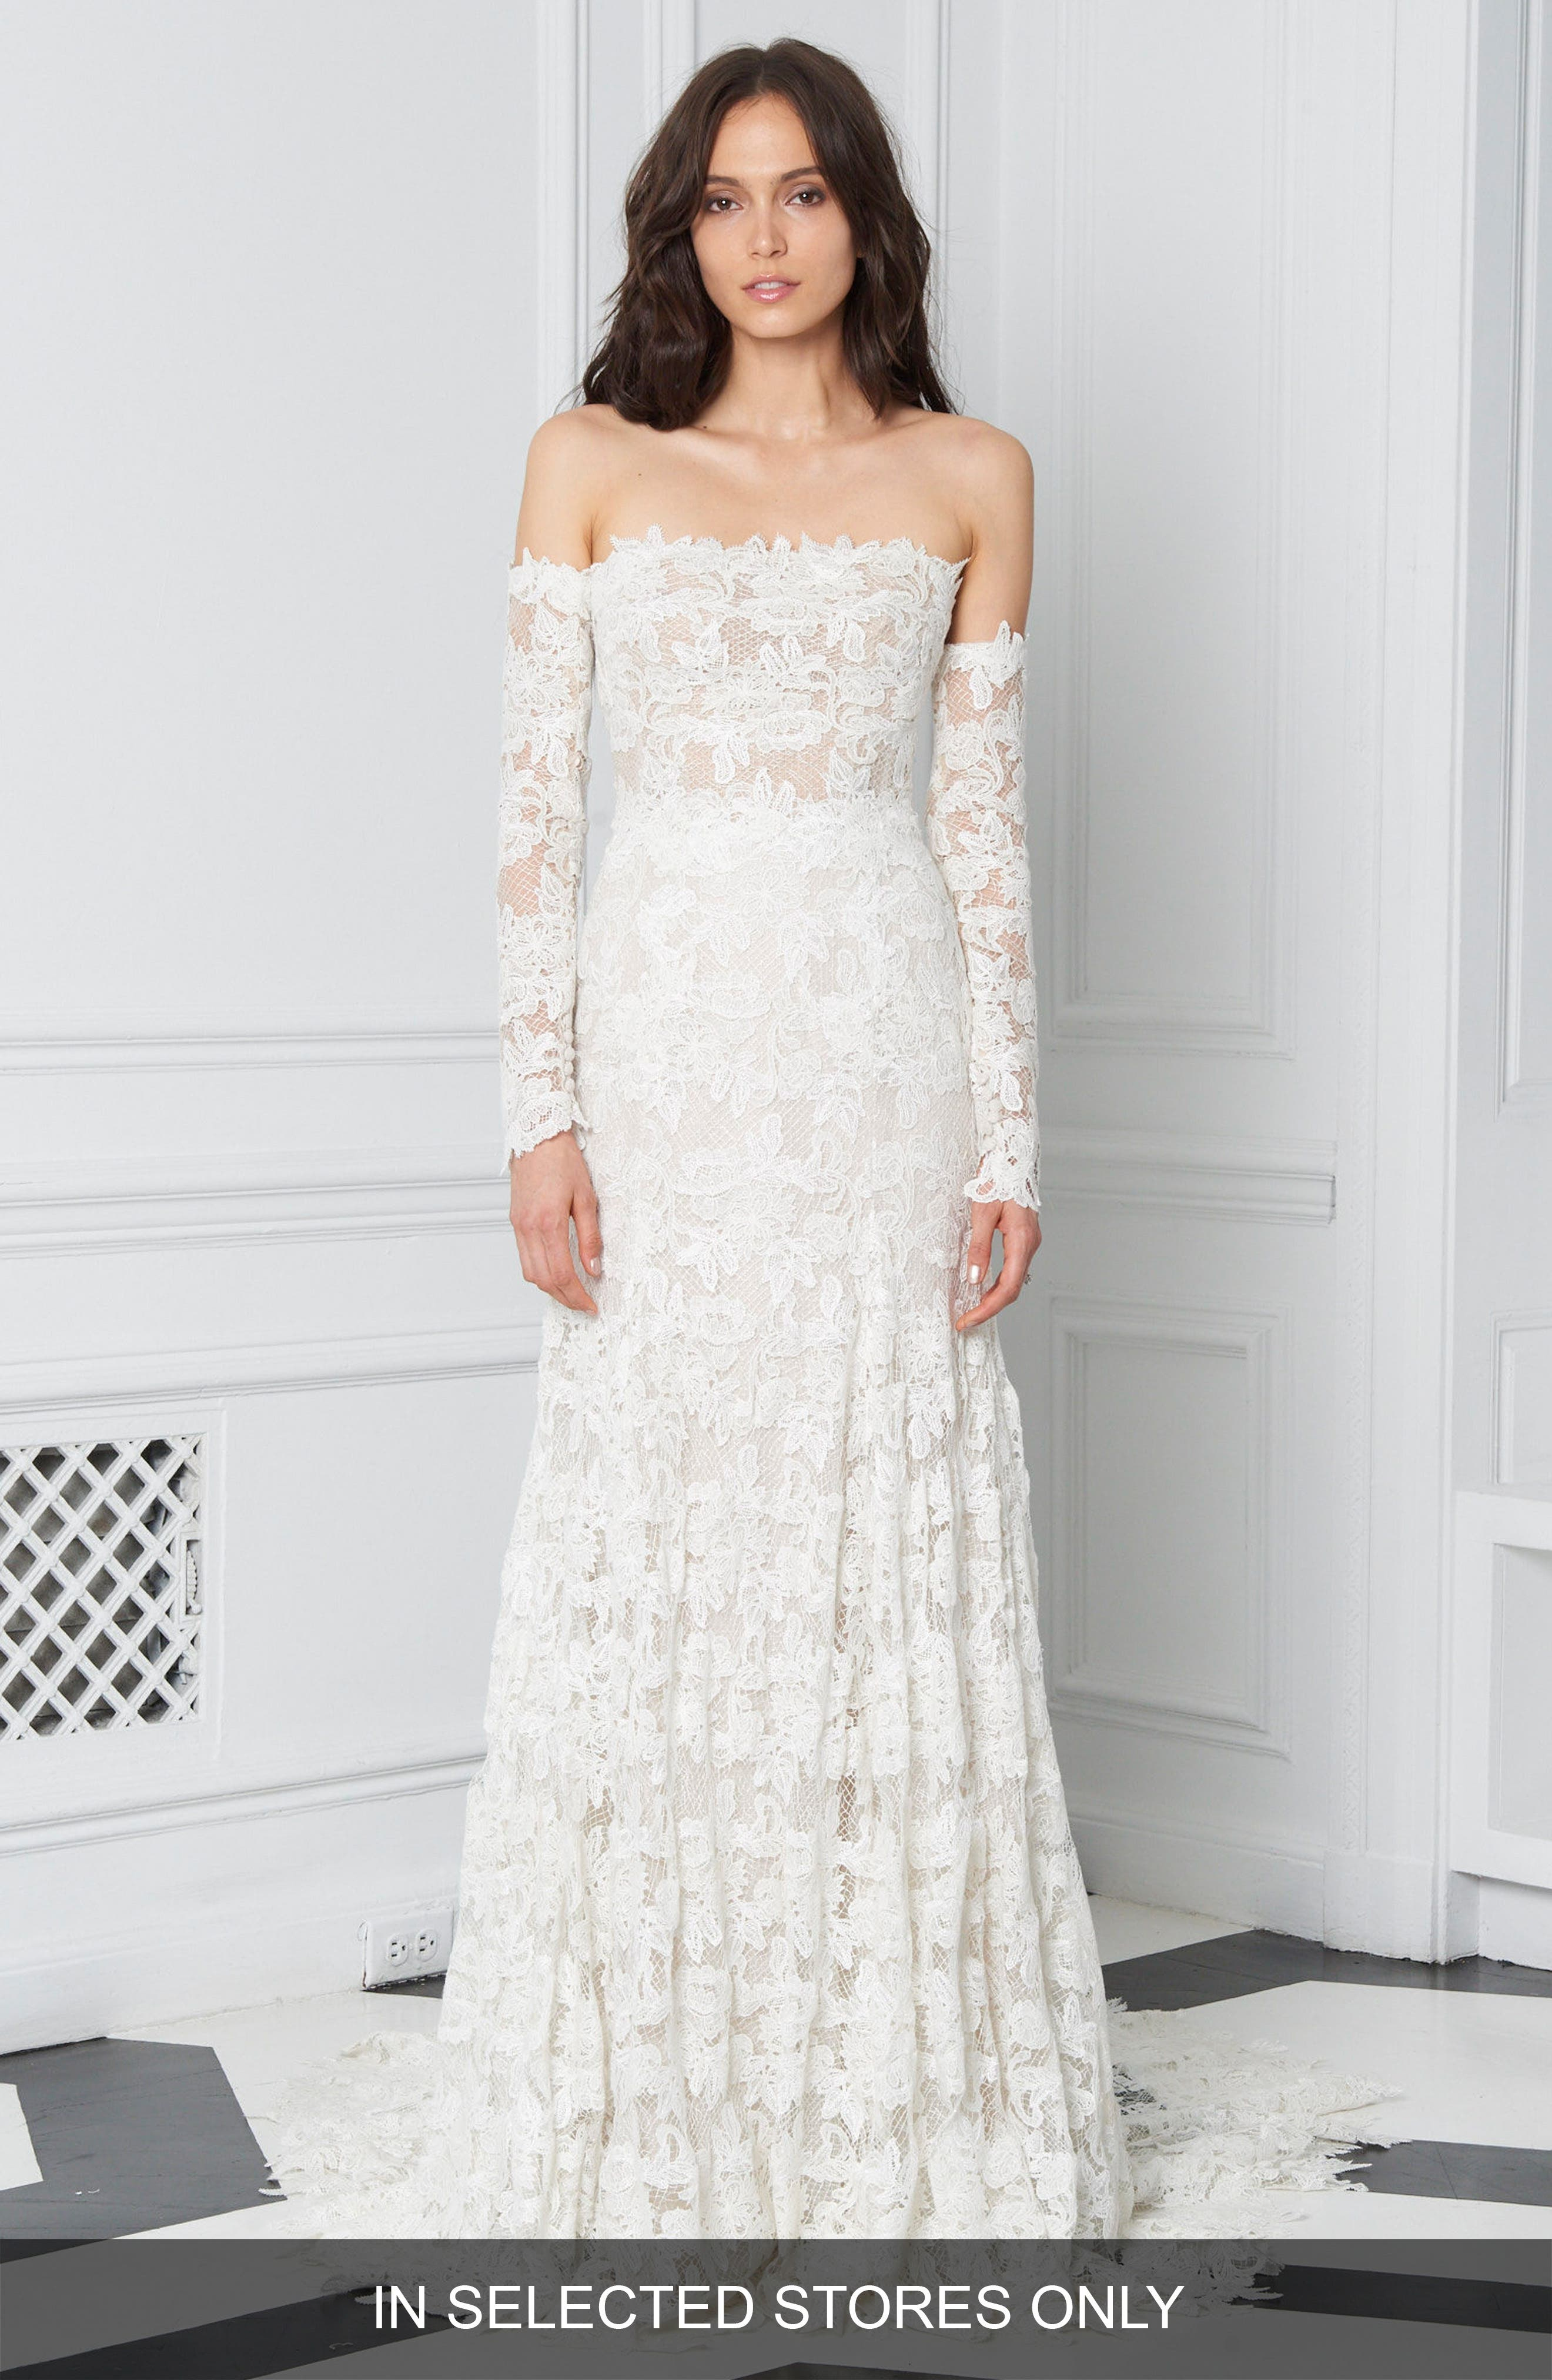 Alternate Image 1 Selected - BLISS Monique Lhuillier Scalloped Lace Off the Shoulder Gown